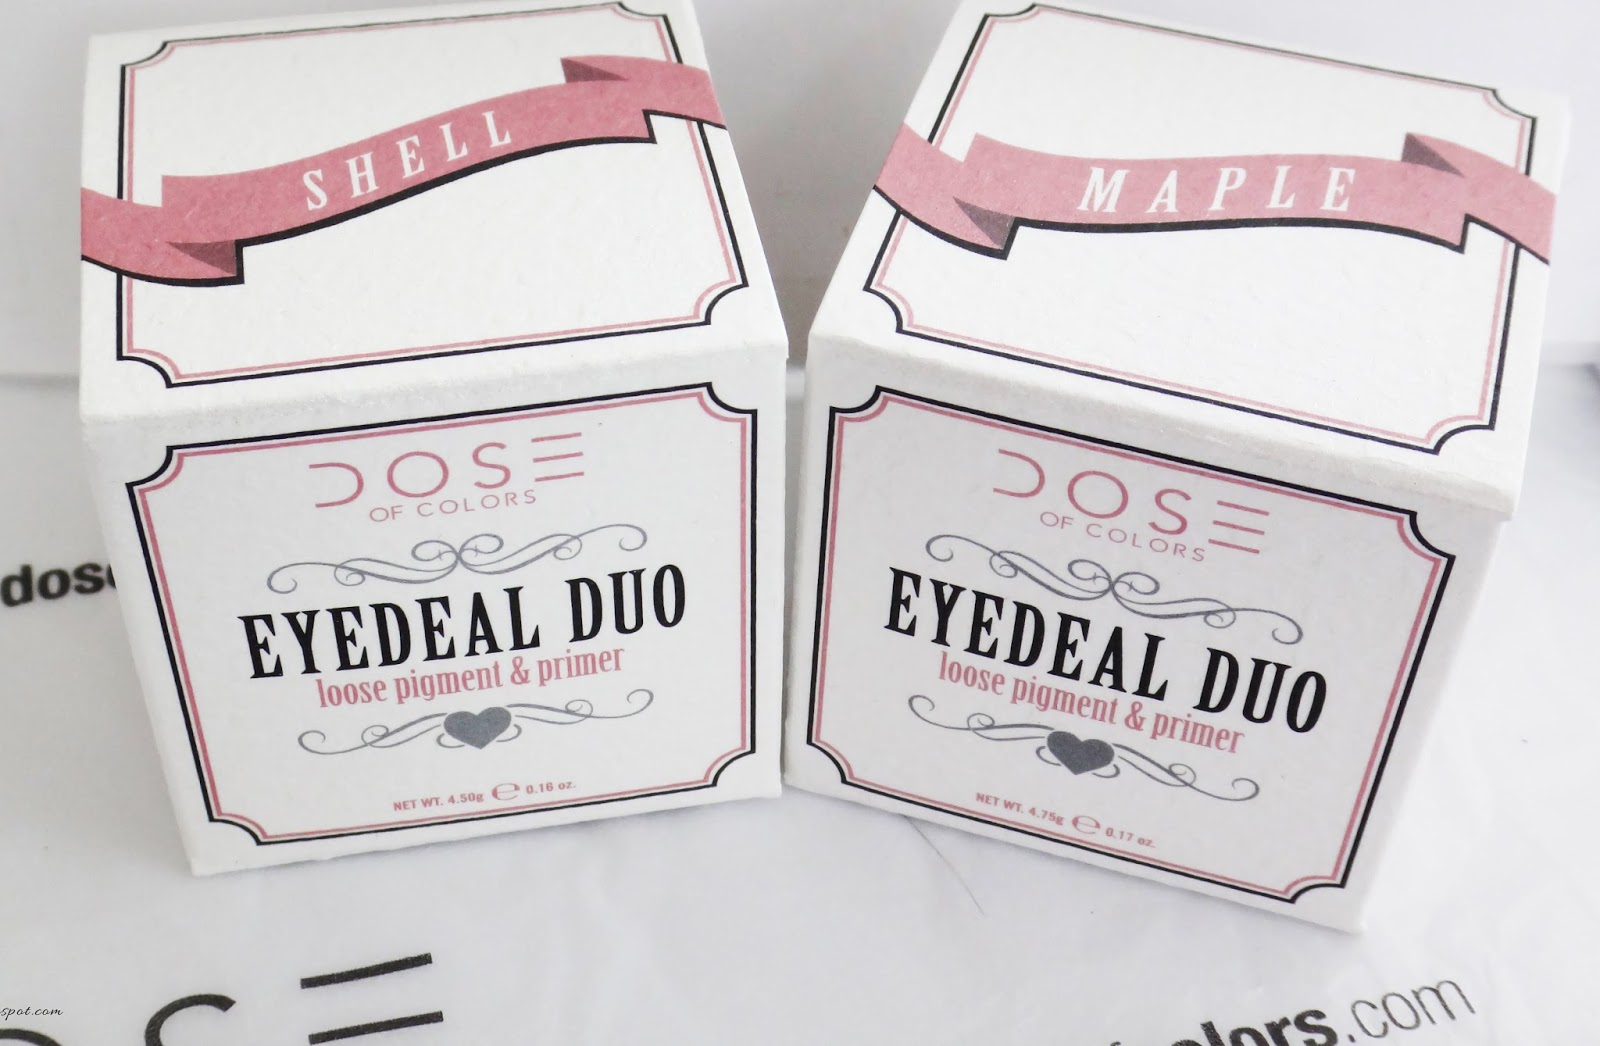 Dose of Colors eyedeal duo - maple shell